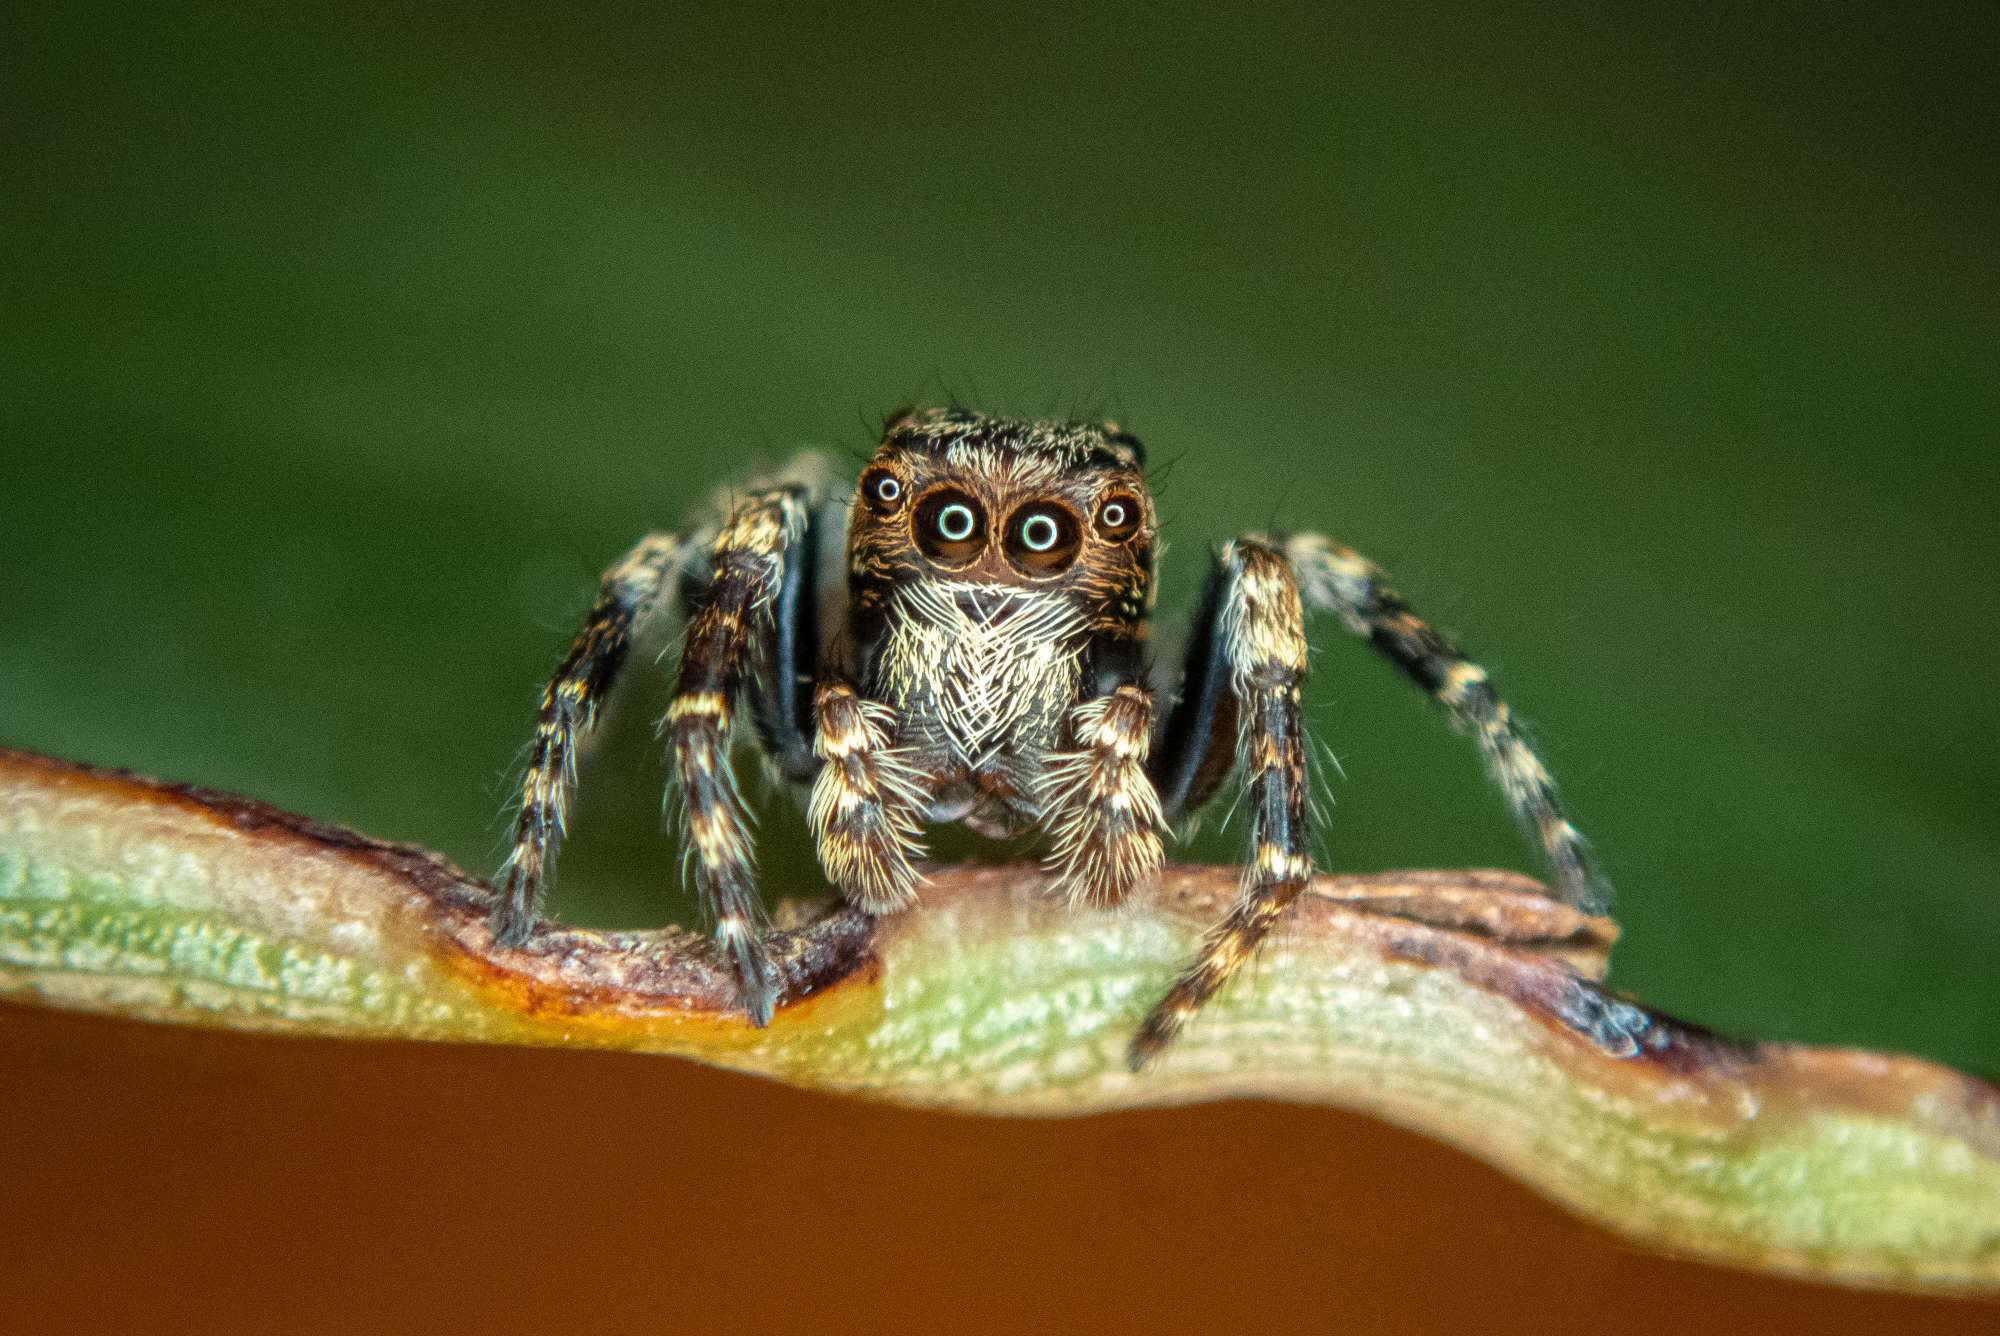 Jumping spider on a leaf with reflection in forward facing eyes.